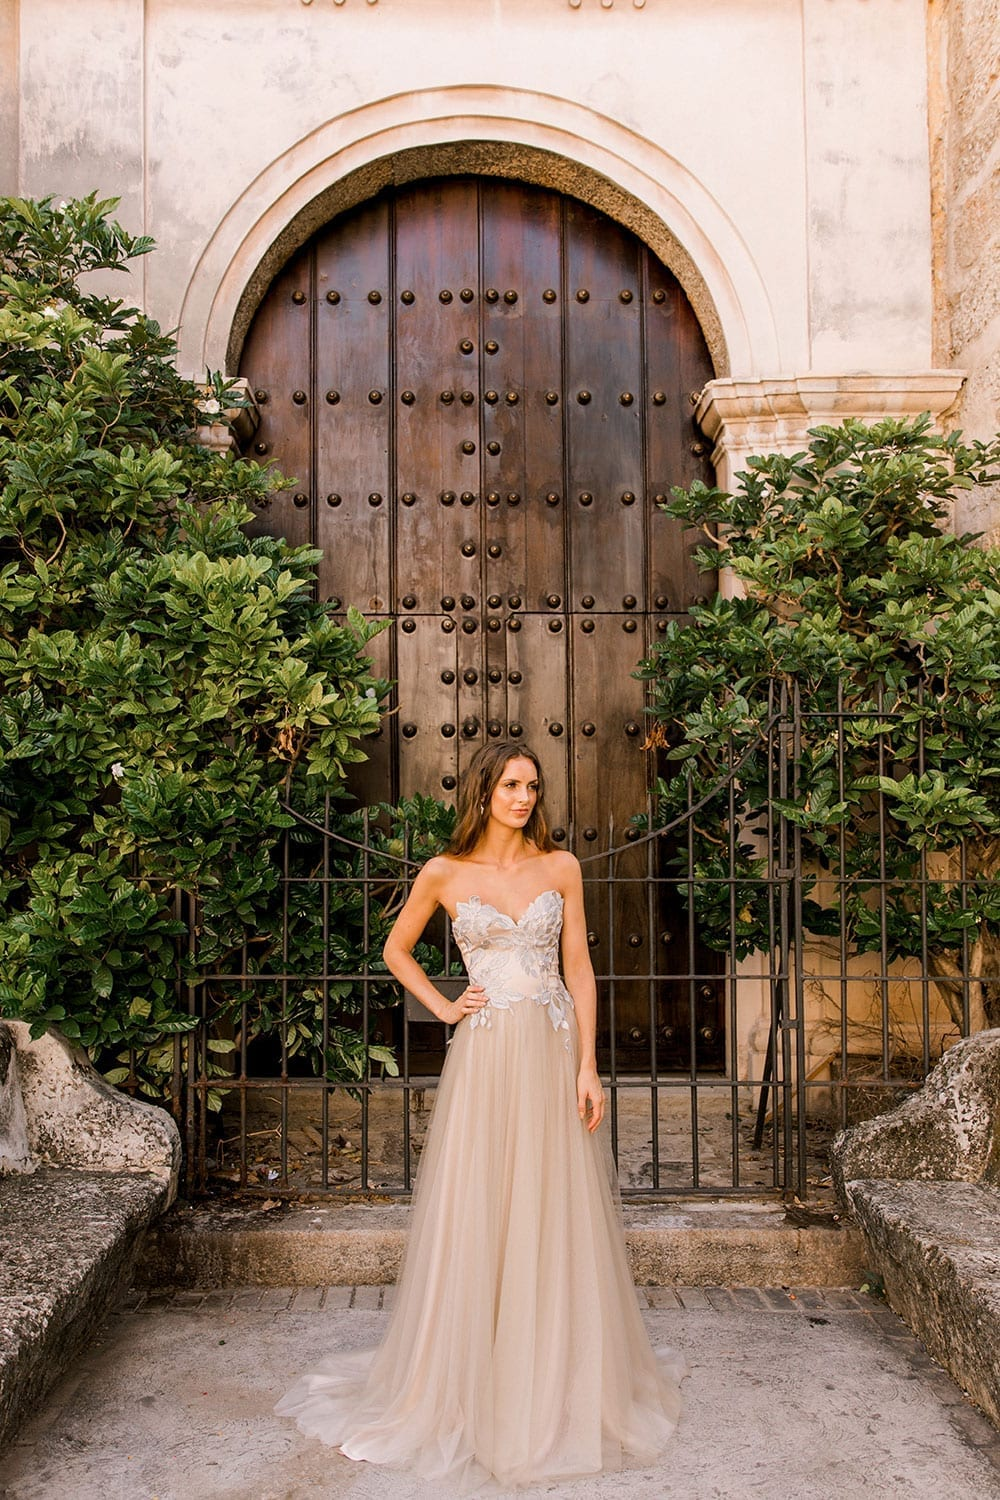 Model wearing Vinka Design Narnia Wedding Dress, a Strapless Tulle Gown with Silver Embroidered Lace Detail hand on hip in front of a wooden doorway with arch in Cuba